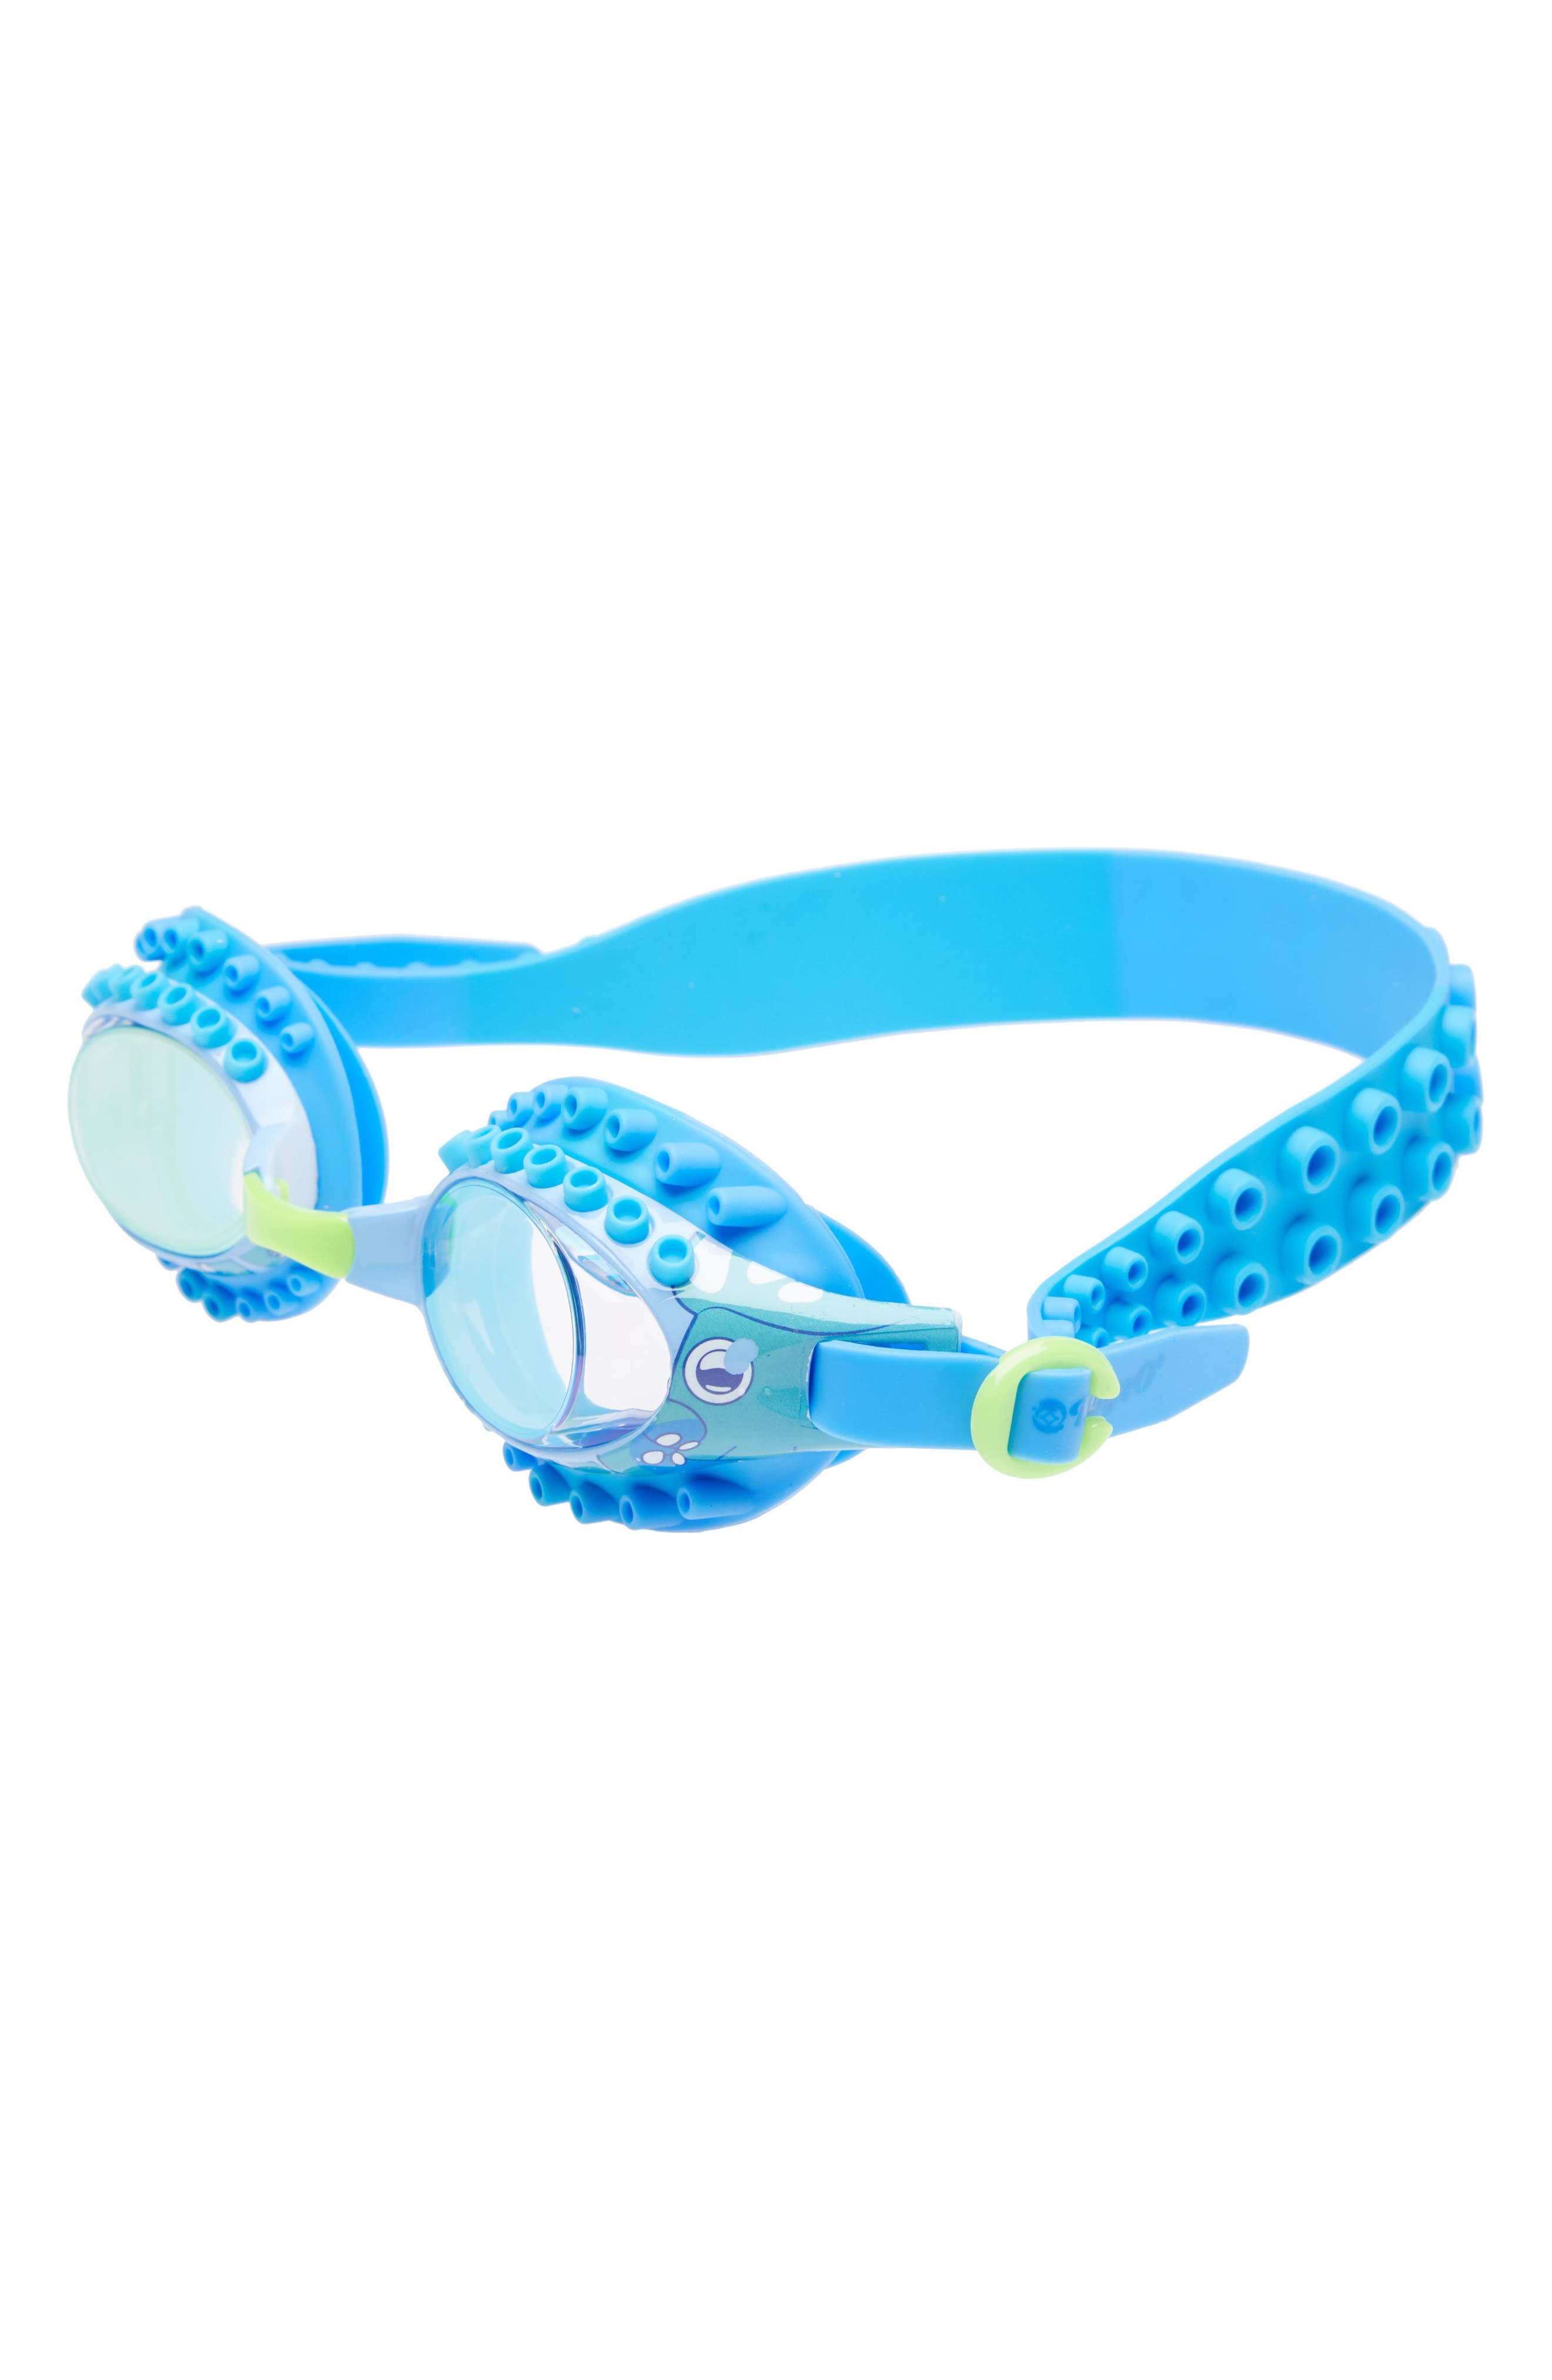 Main Image - Bling2o Octopus Swim Goggles (Kids)